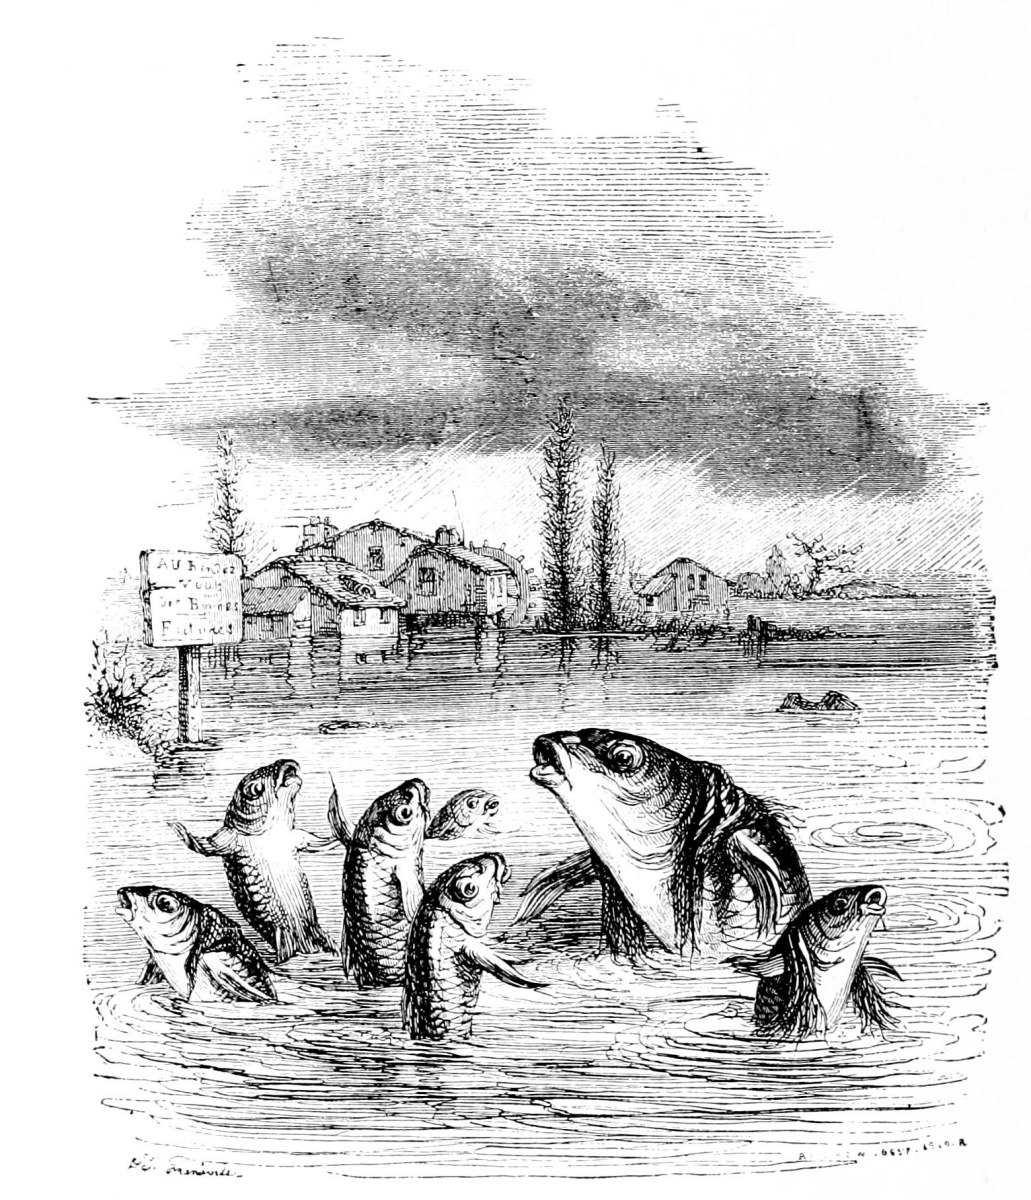 Jean Inias Isidore (Gerard) Granville. Old carp and young carp. Illustrations to the fables of Florian